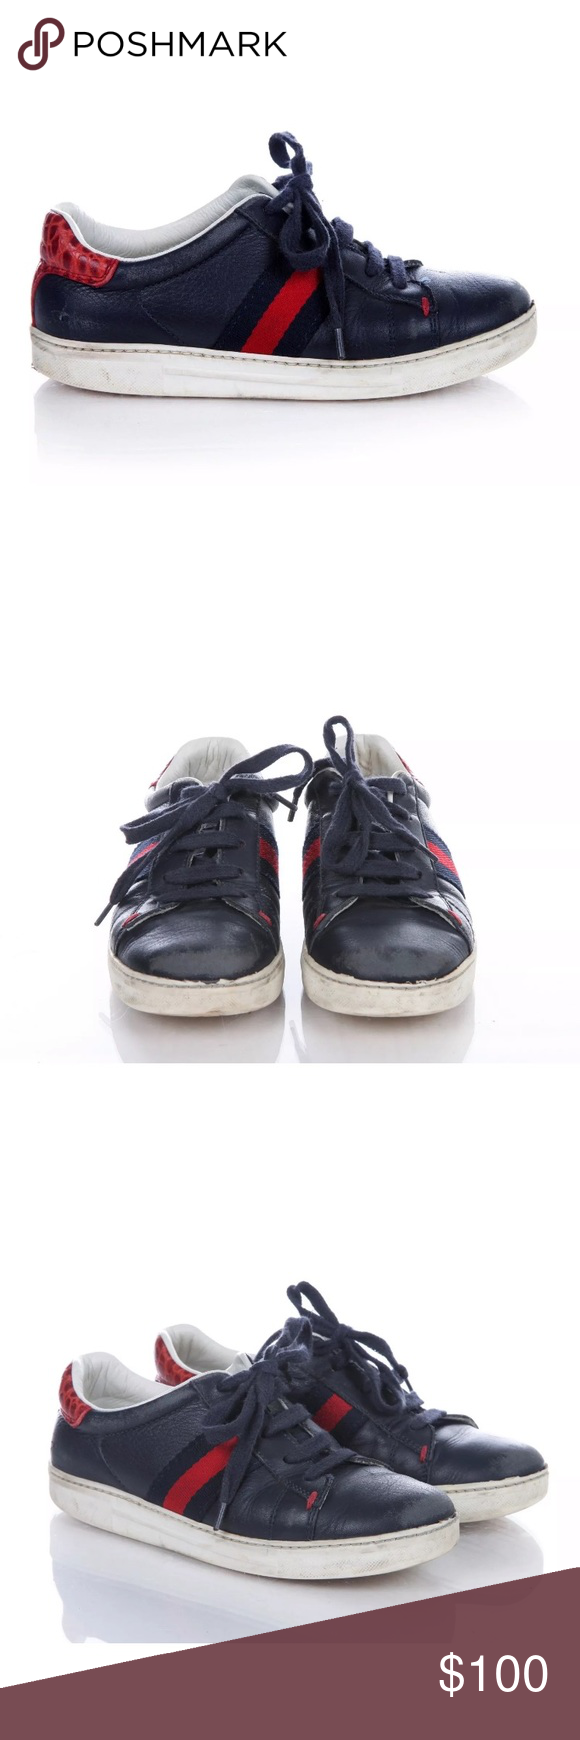 7f49ec260 Gucci boys leather sneakers croc navy red 12.5 30 Boys Gucci sneakers size  US 12.5, EUR 30. Navy blue leather with red croc back. Lace up shoes.